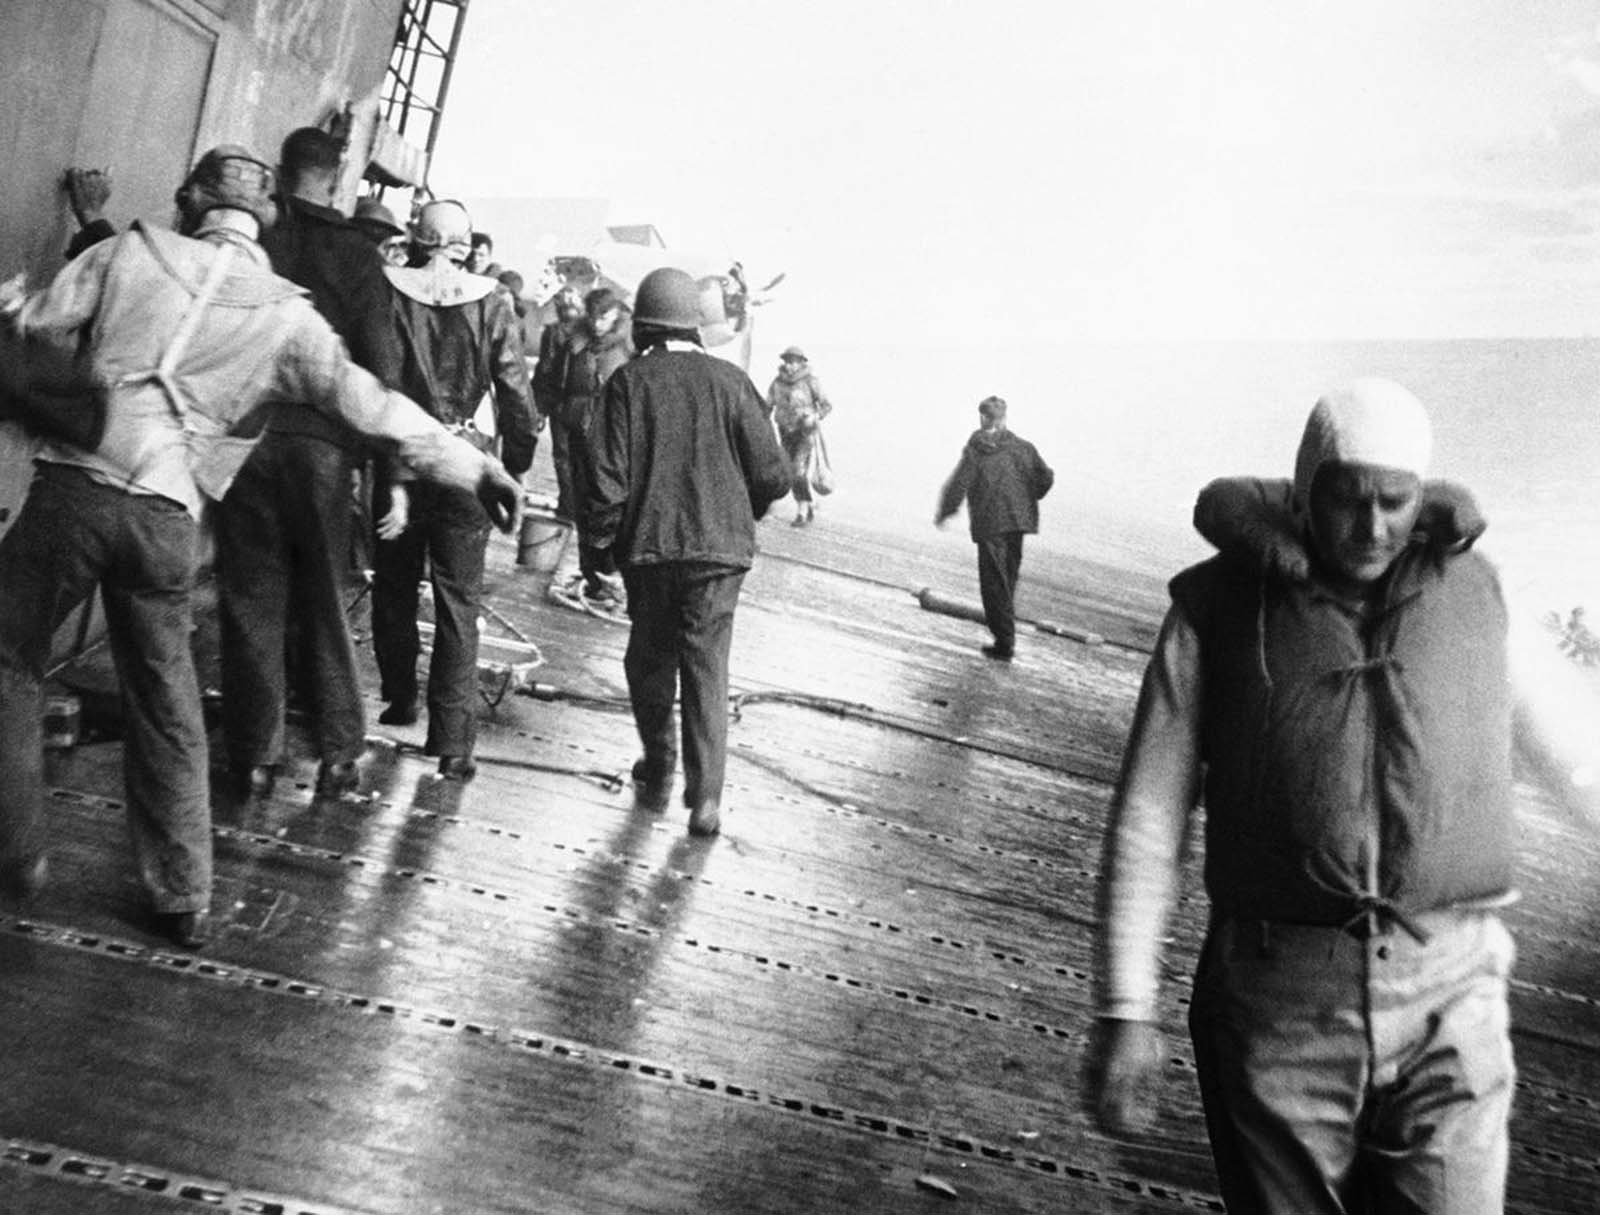 Crewmen of the USS Yorktown pick their way along the sloping flight deck of the aircraft carrier as the ship listed heavily, heading for damaged sections to see if they can patch up the crippled ship, in June of 1942.